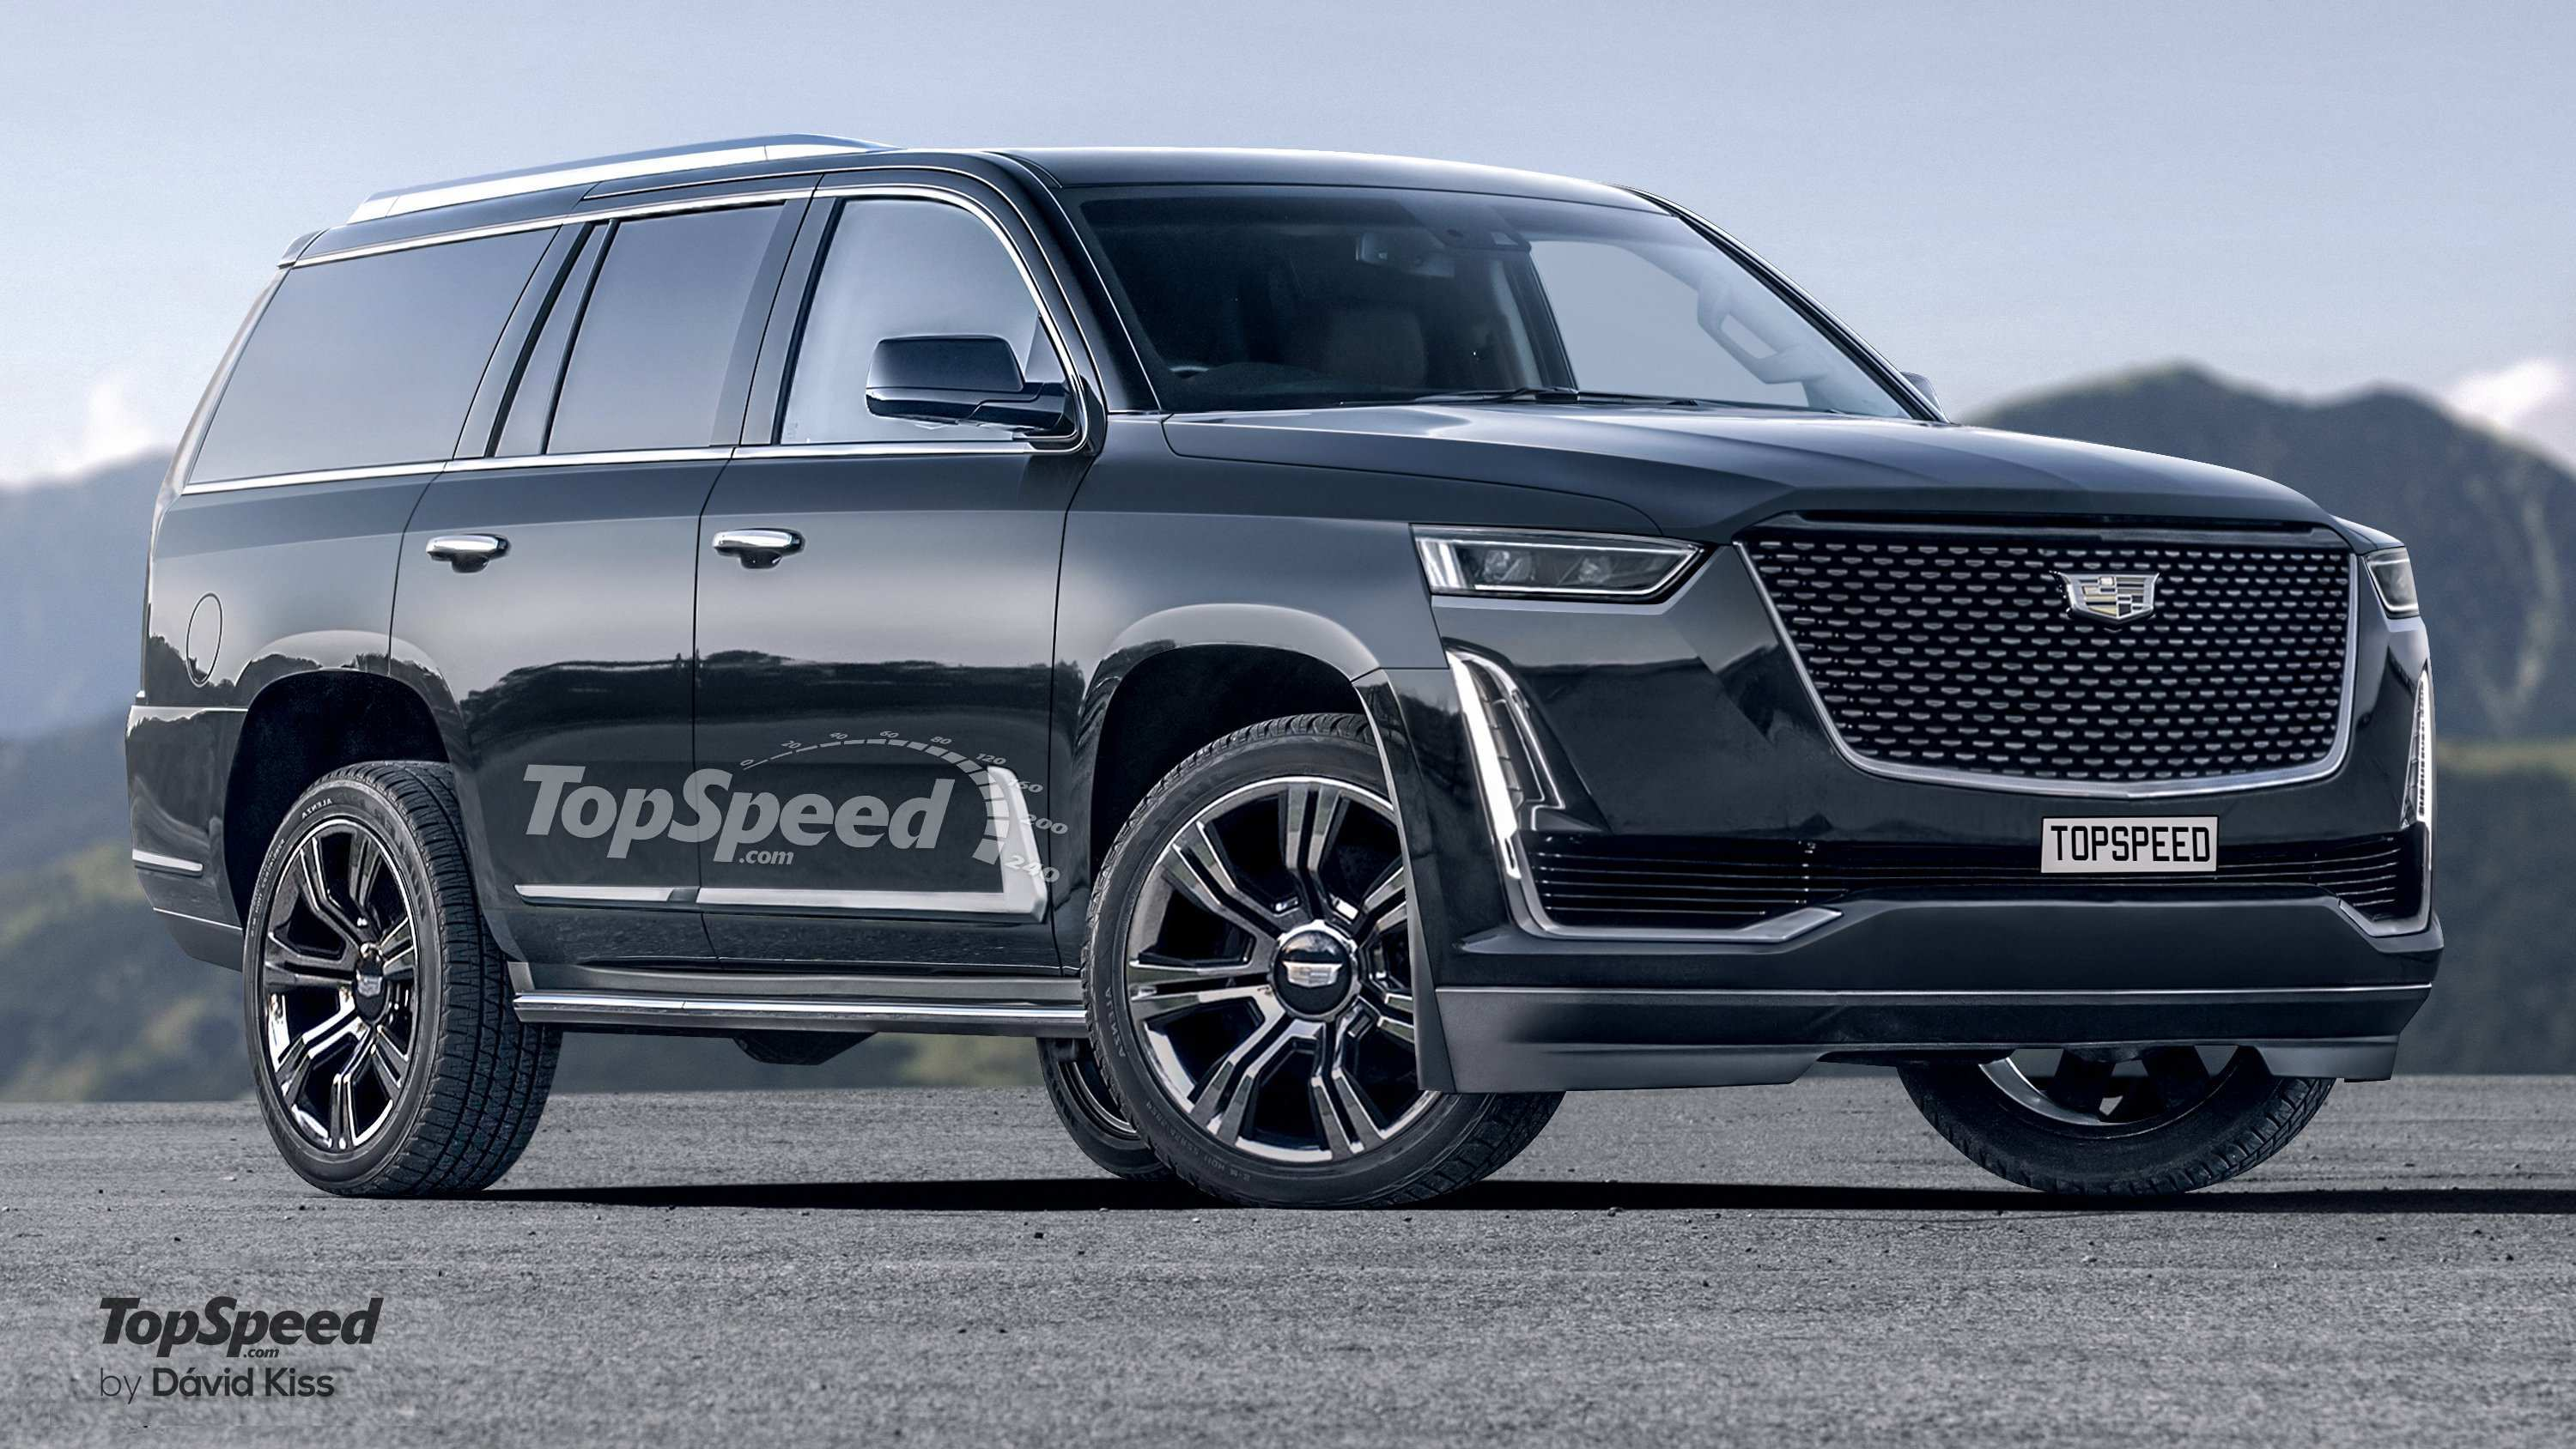 23 All New 2020 Cadillac Escalade Images Rumors